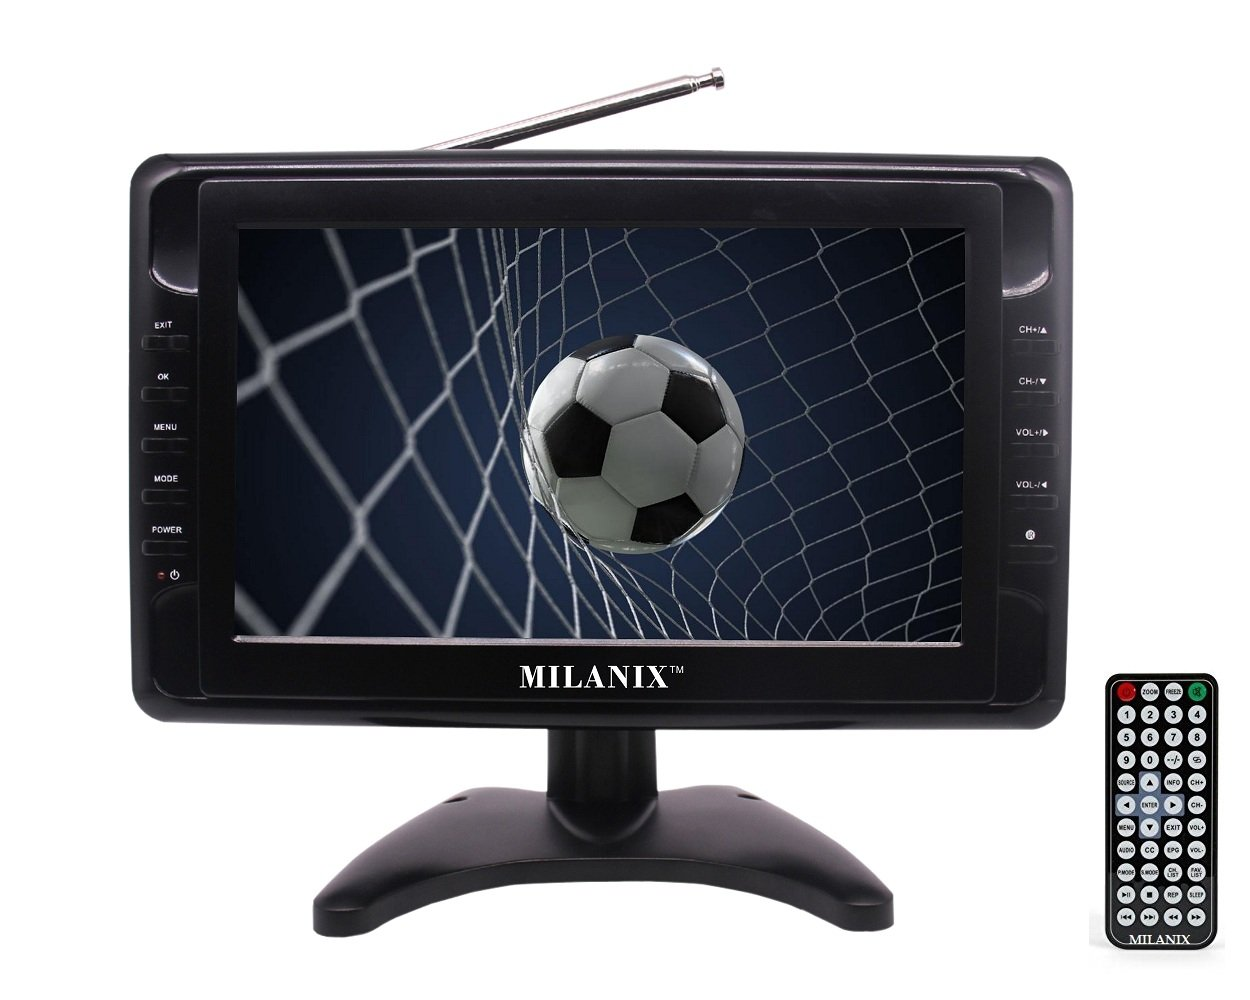 Milanix MX9 9'' Portable Widescreen LCD TV with Detachable Antennas, USB/SD Card Slot, Built in Digital Tuner, and AV Inputs